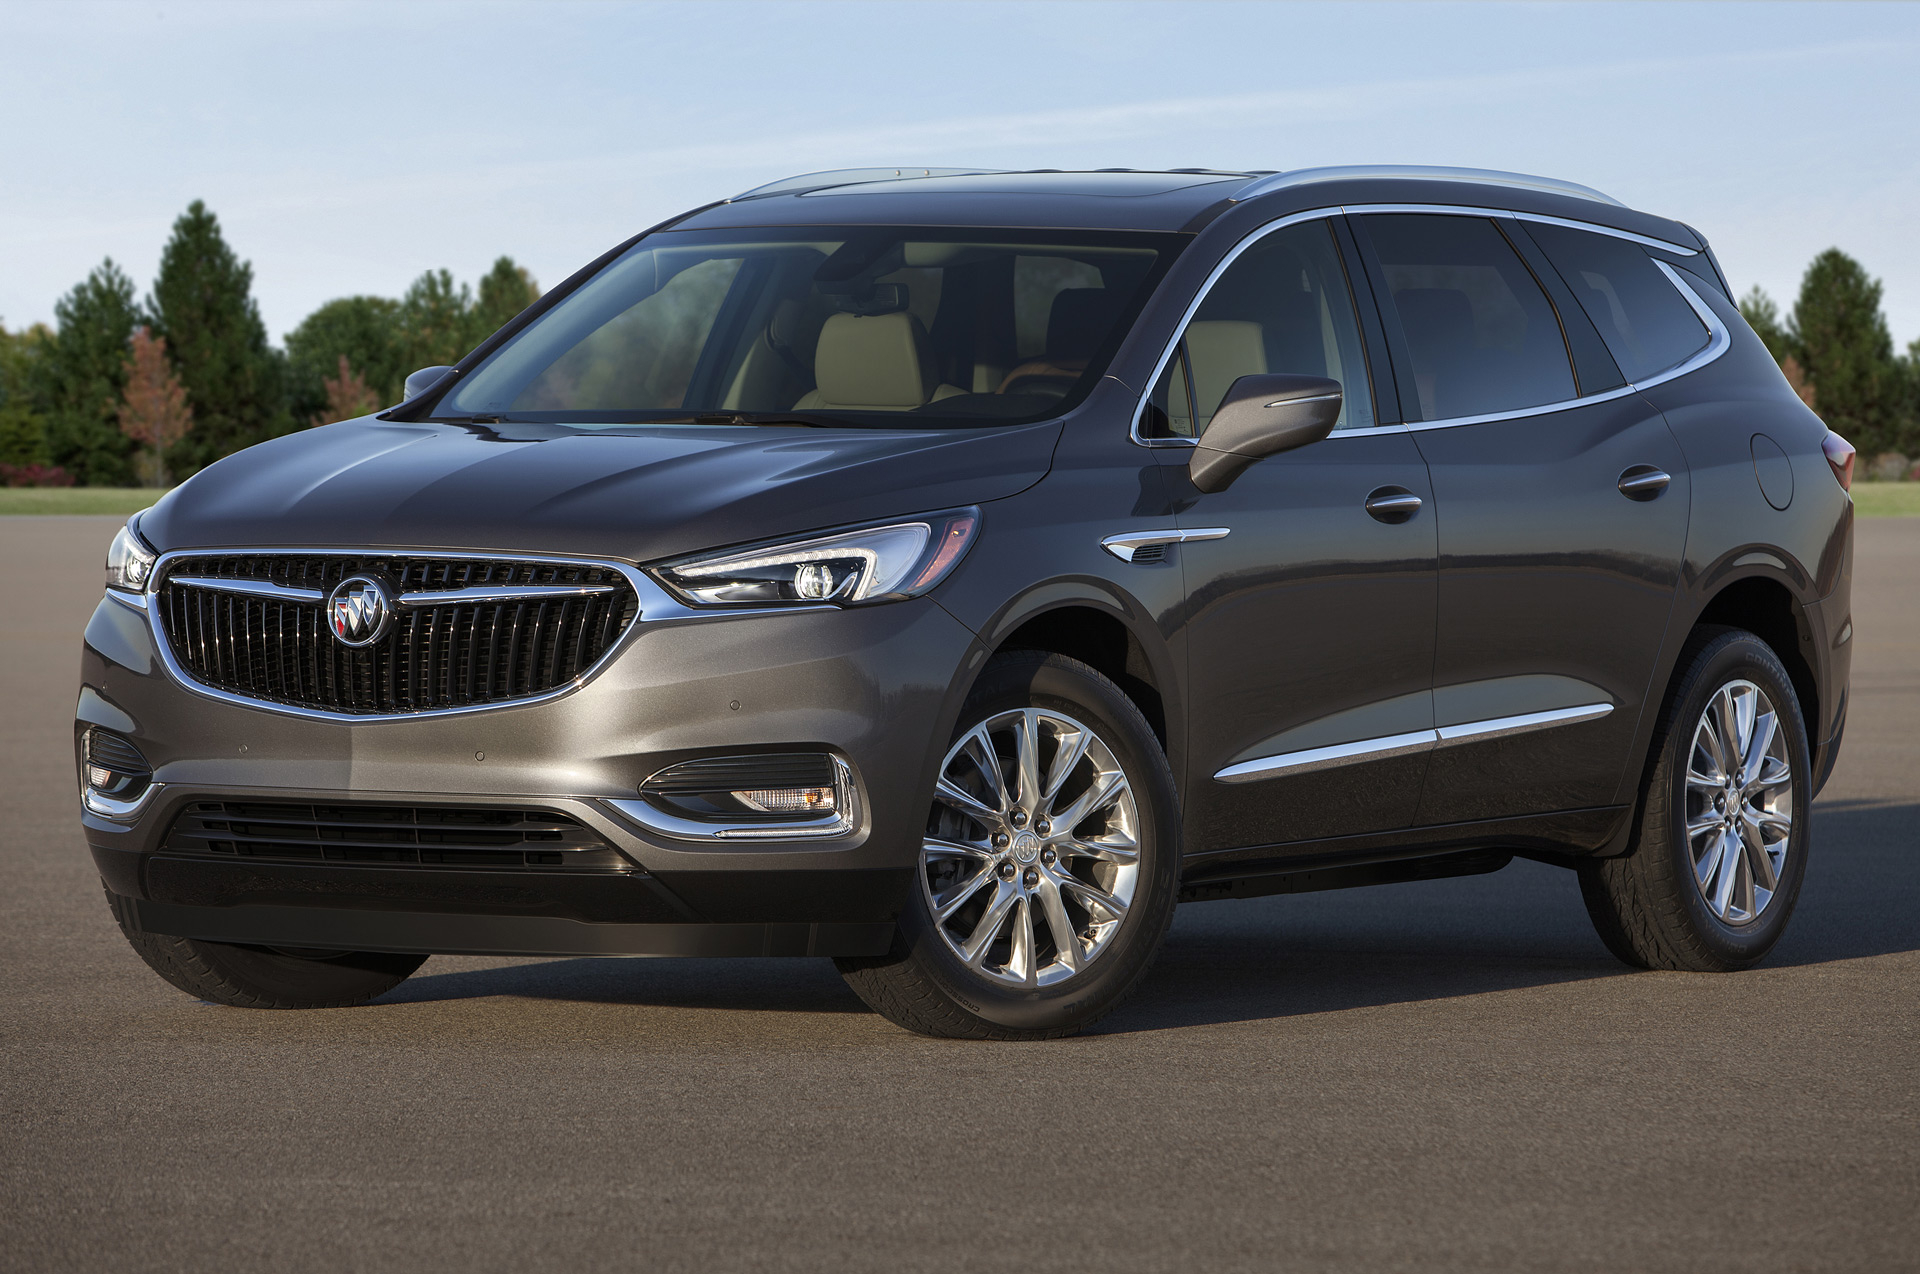 2018 Buick Enclave Video Preview Can A New 2021 Buick Enclave Be Flat Towed